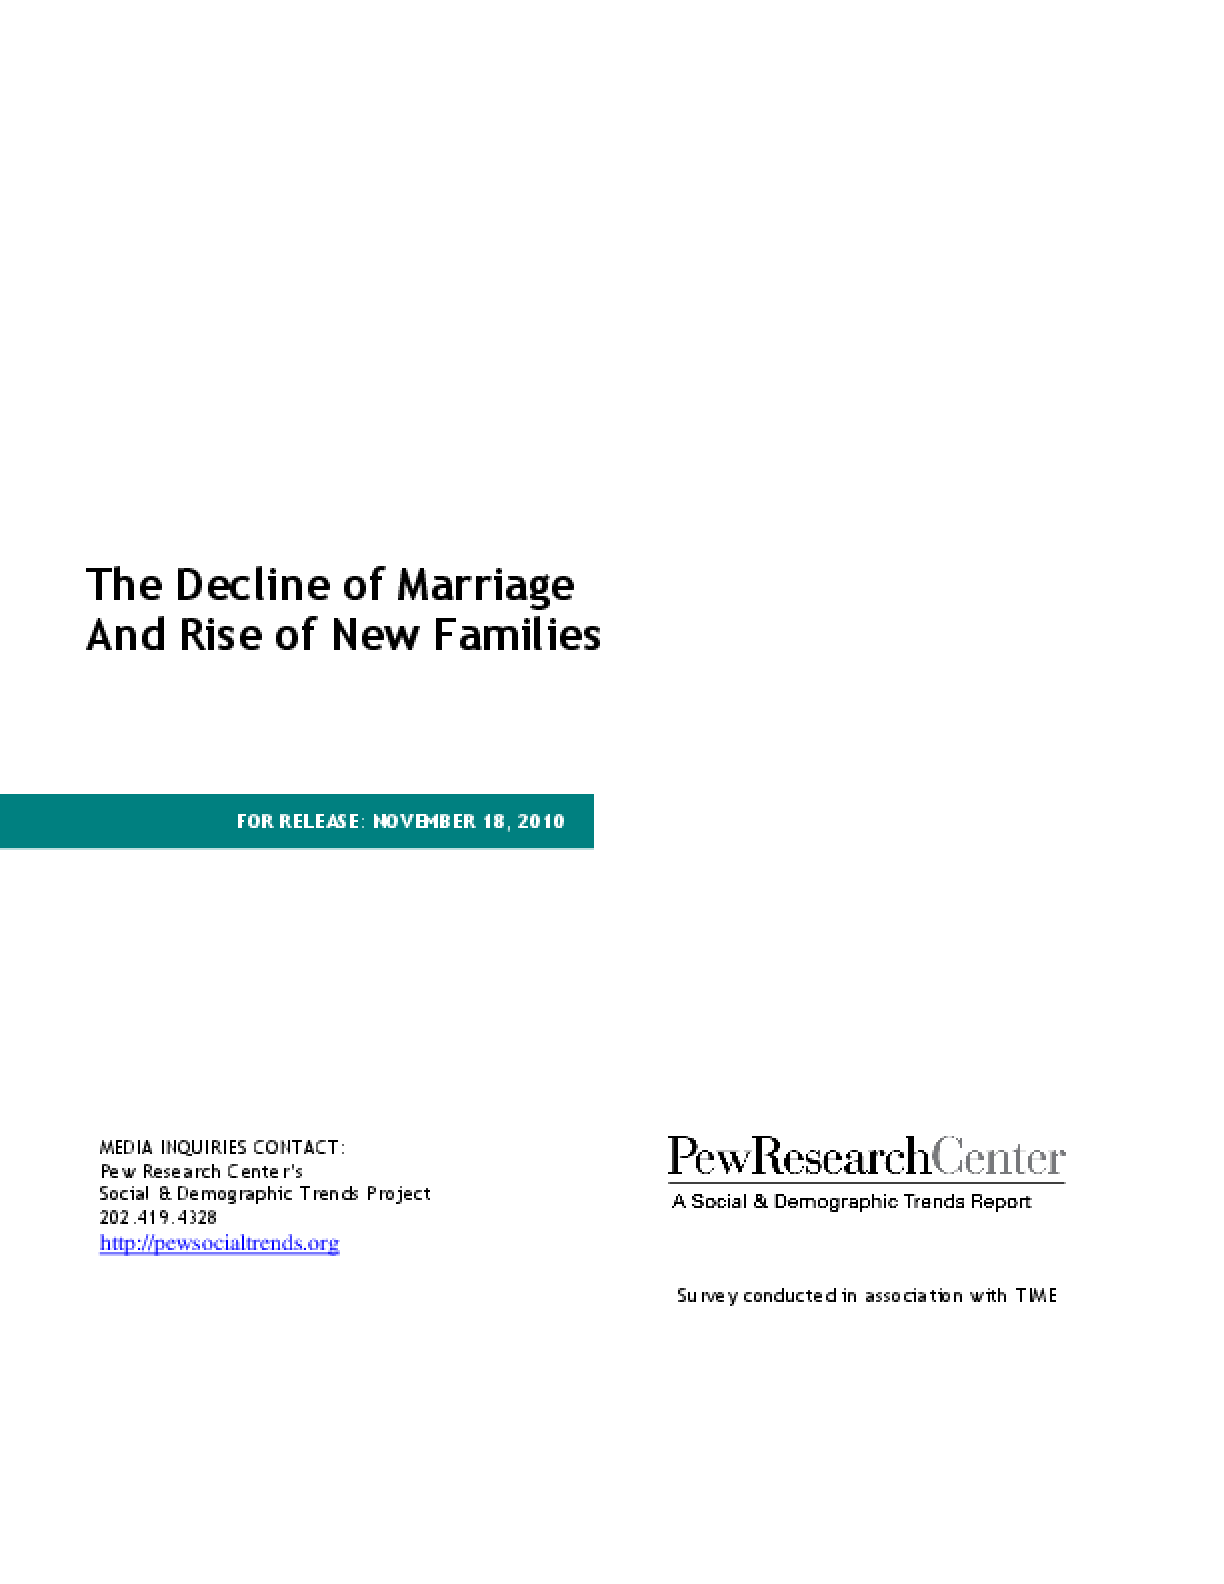 The Decline of Marriage and Rise of New Families